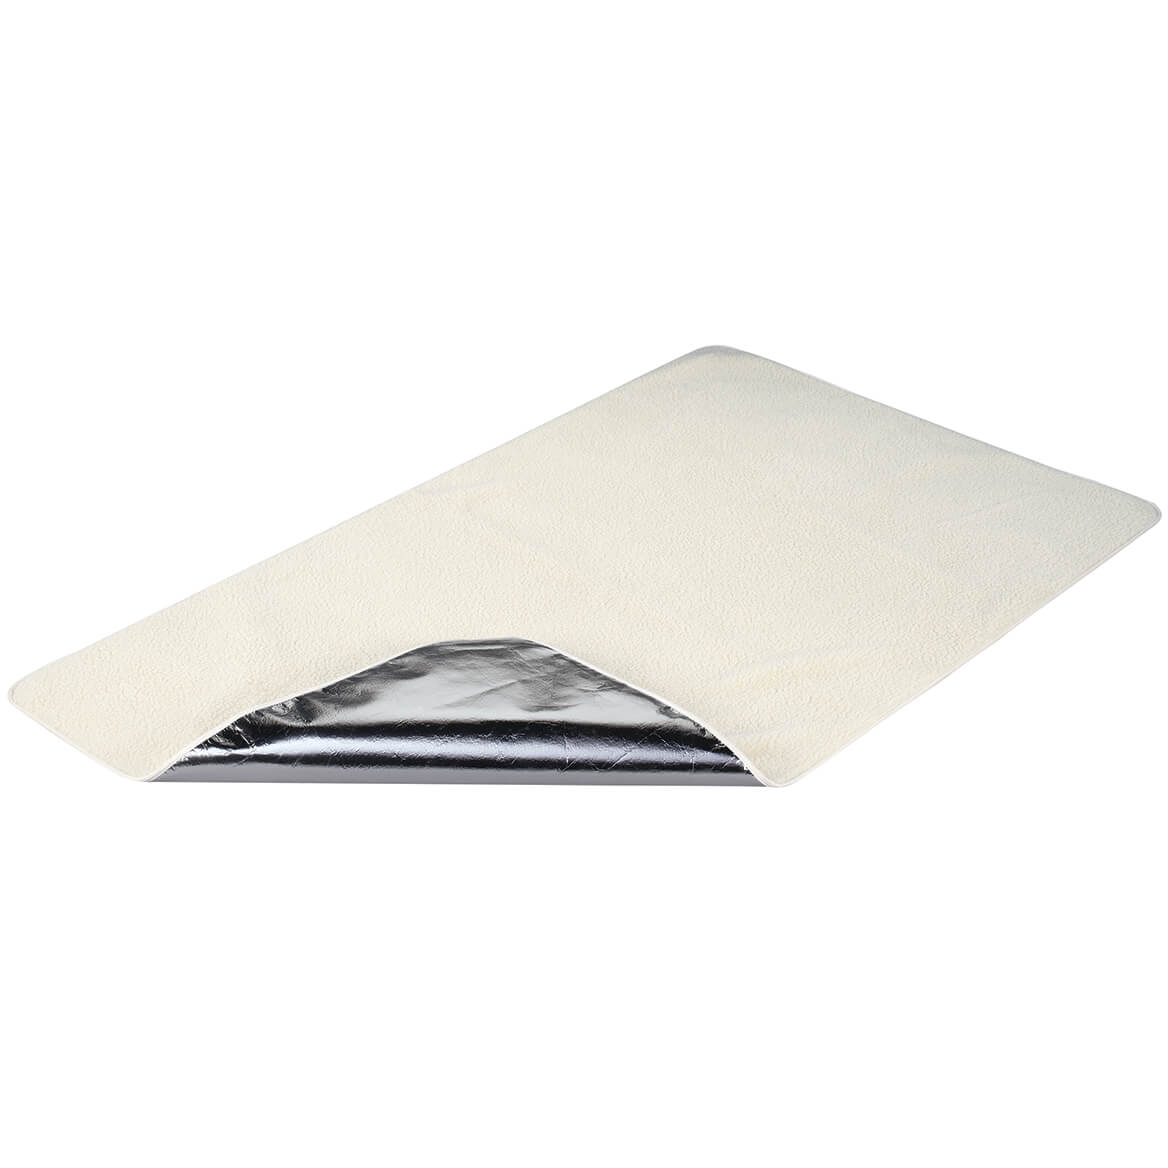 Dual Sided Heat-Reflective Blanket or Mattress Pad-370323